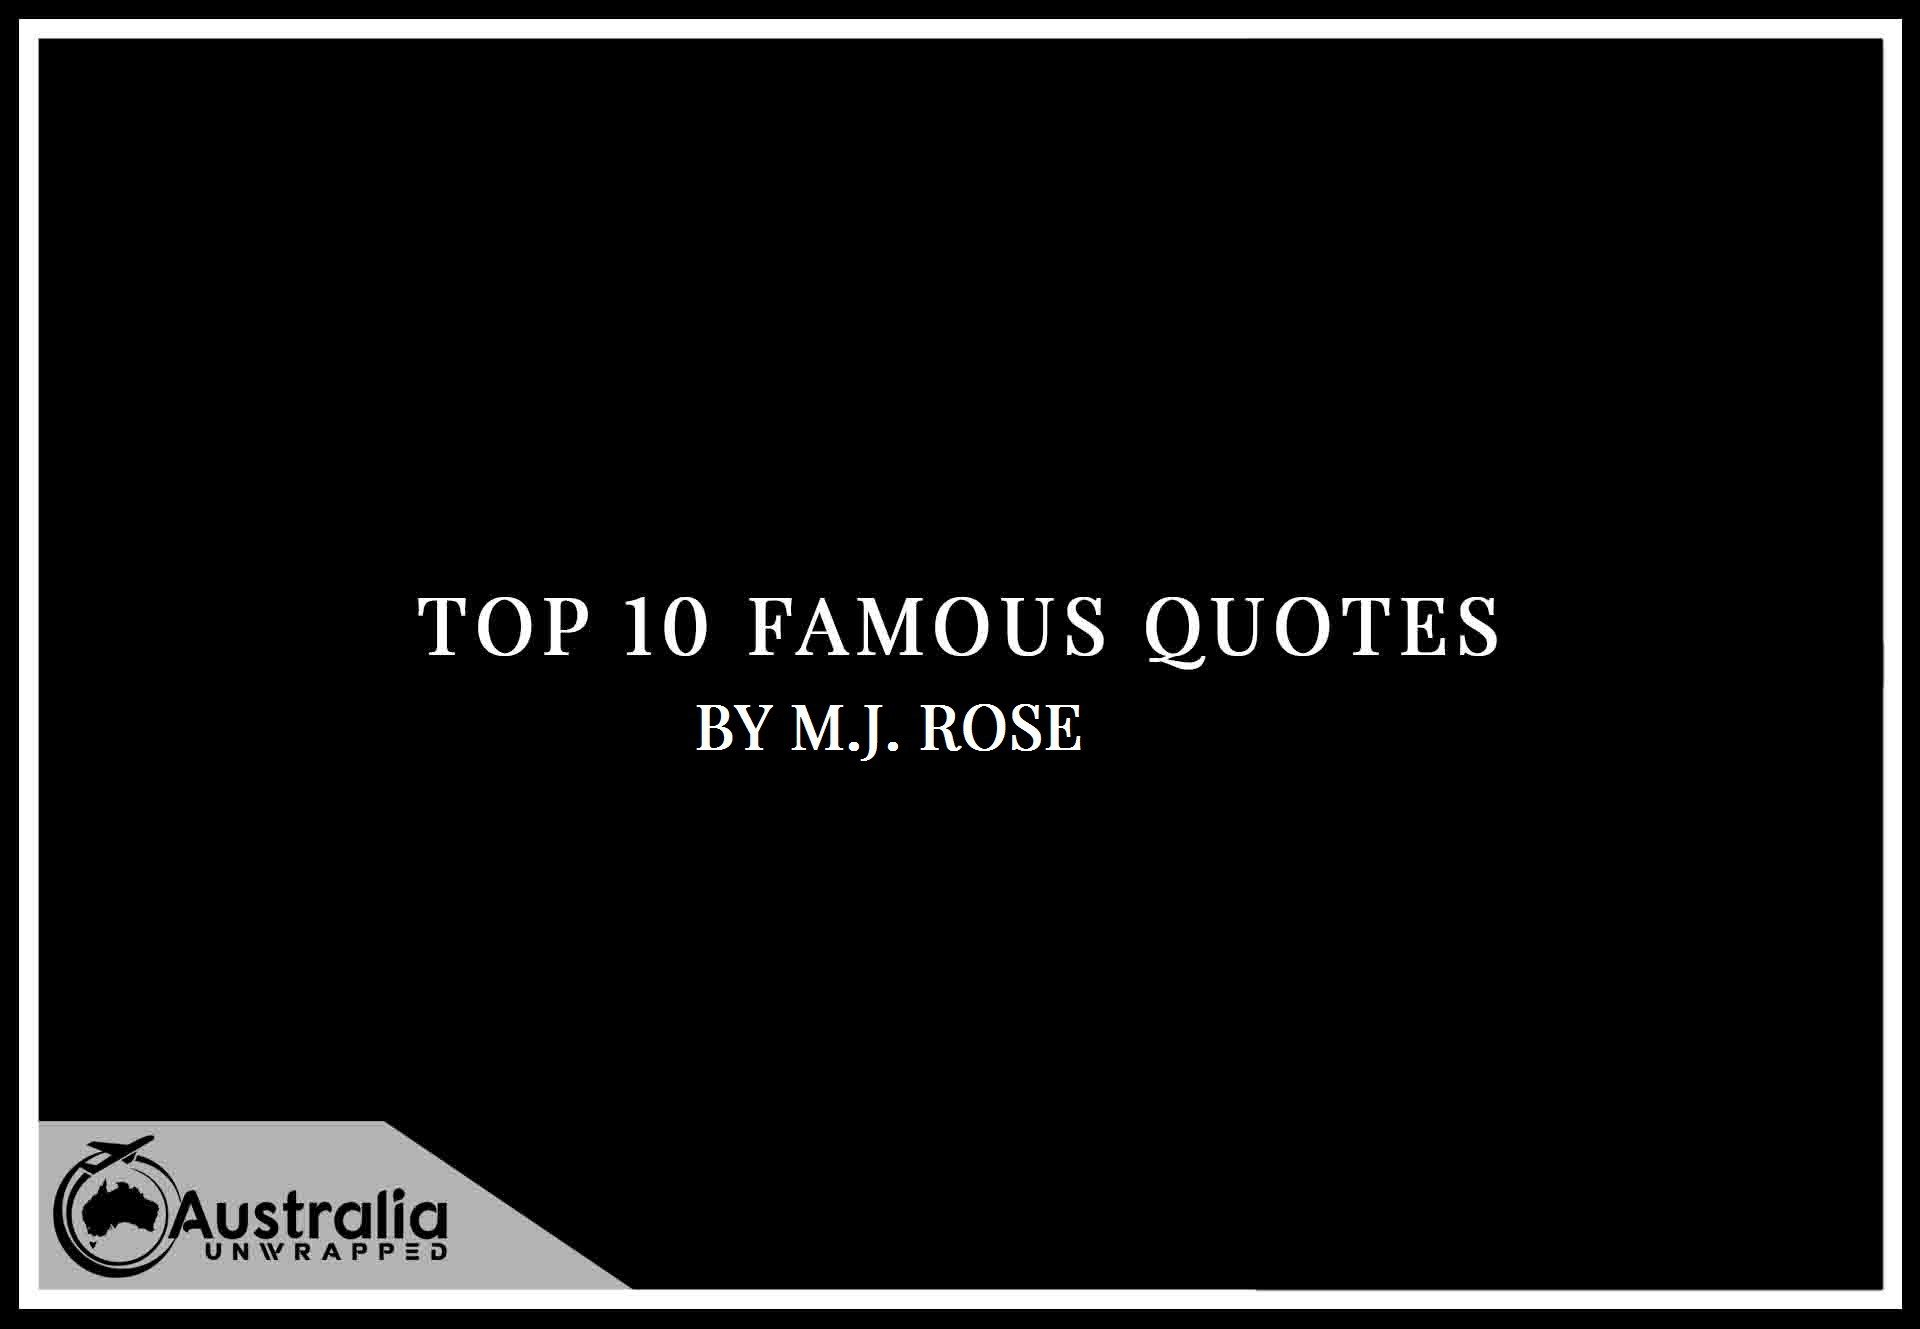 M.J. Rose's Top 10 Popular and Famous Quotes